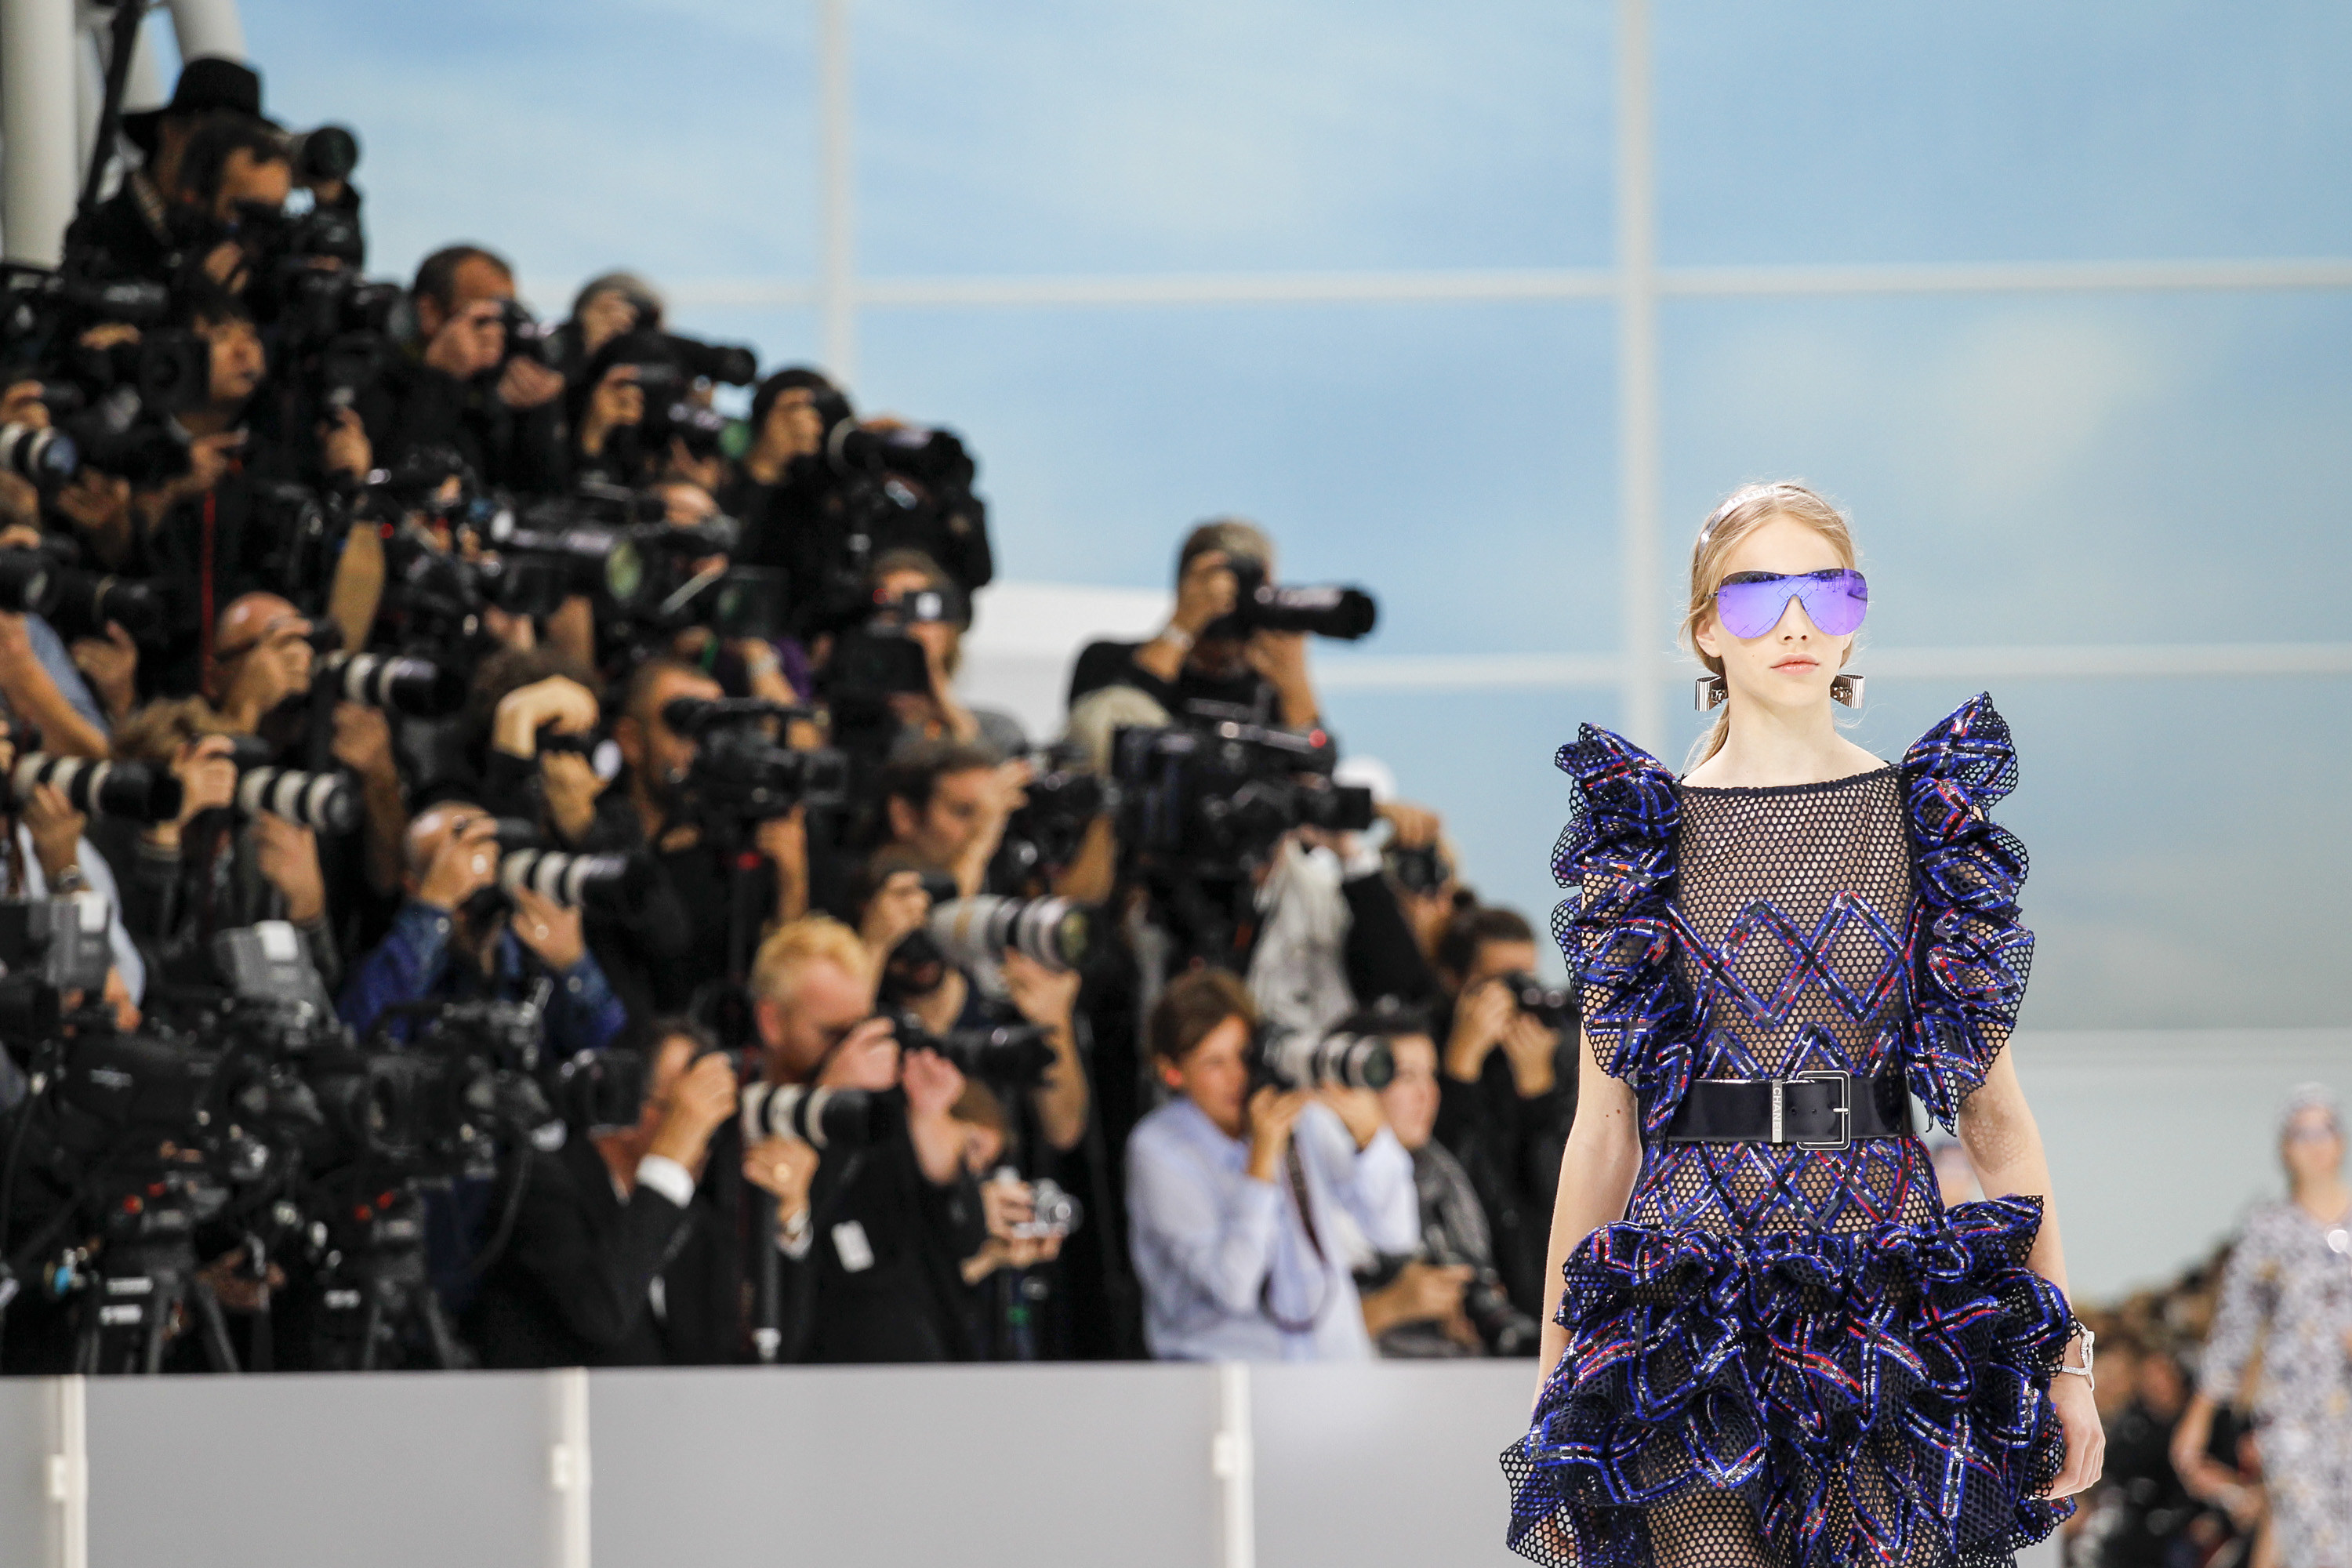 ChanelAirlines _S16_Atmosphere 04